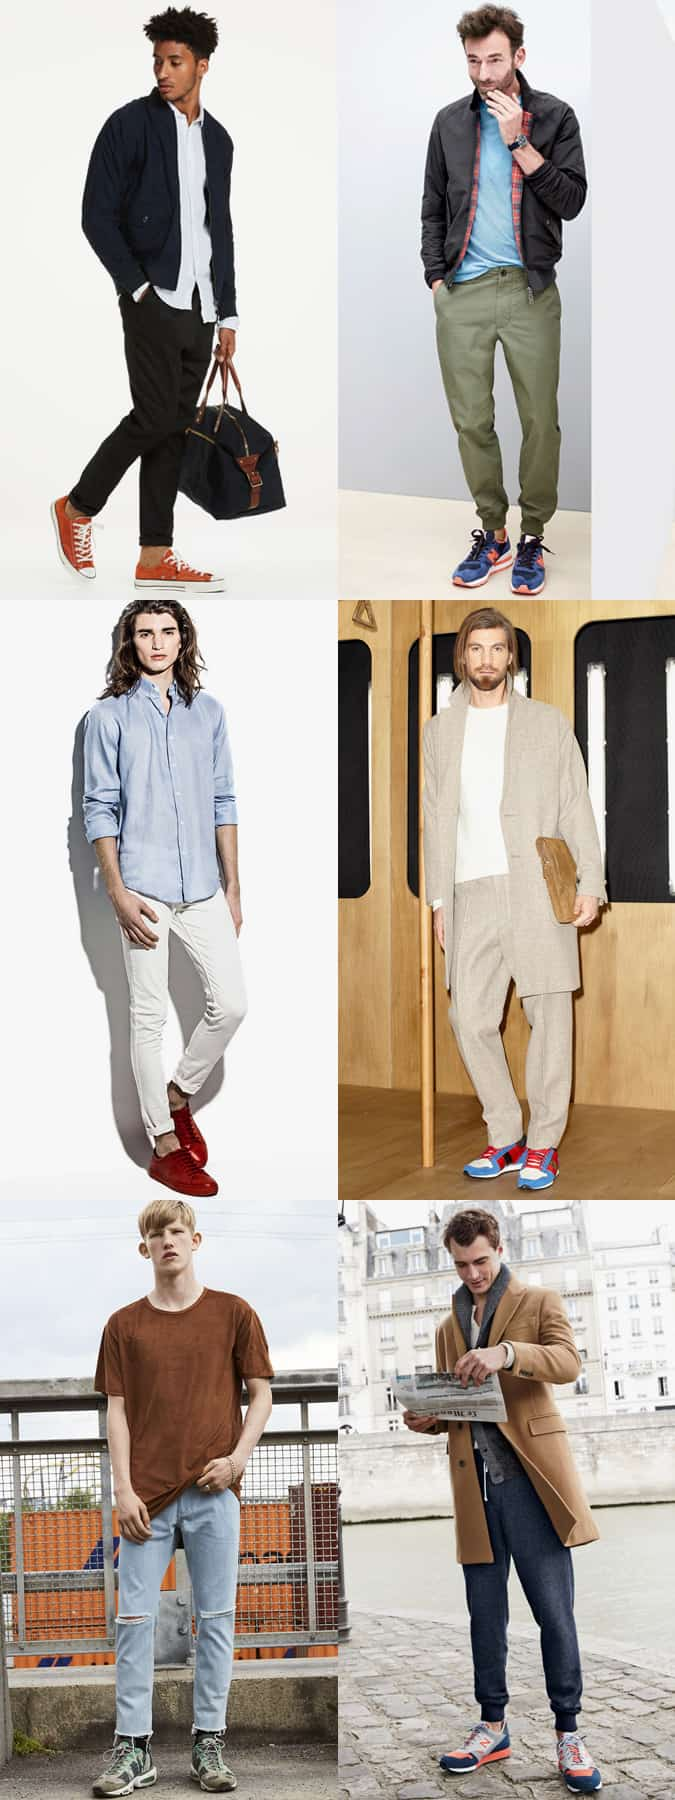 c311851c28 The right trousers and jeans to wear with bold colourful sneakers